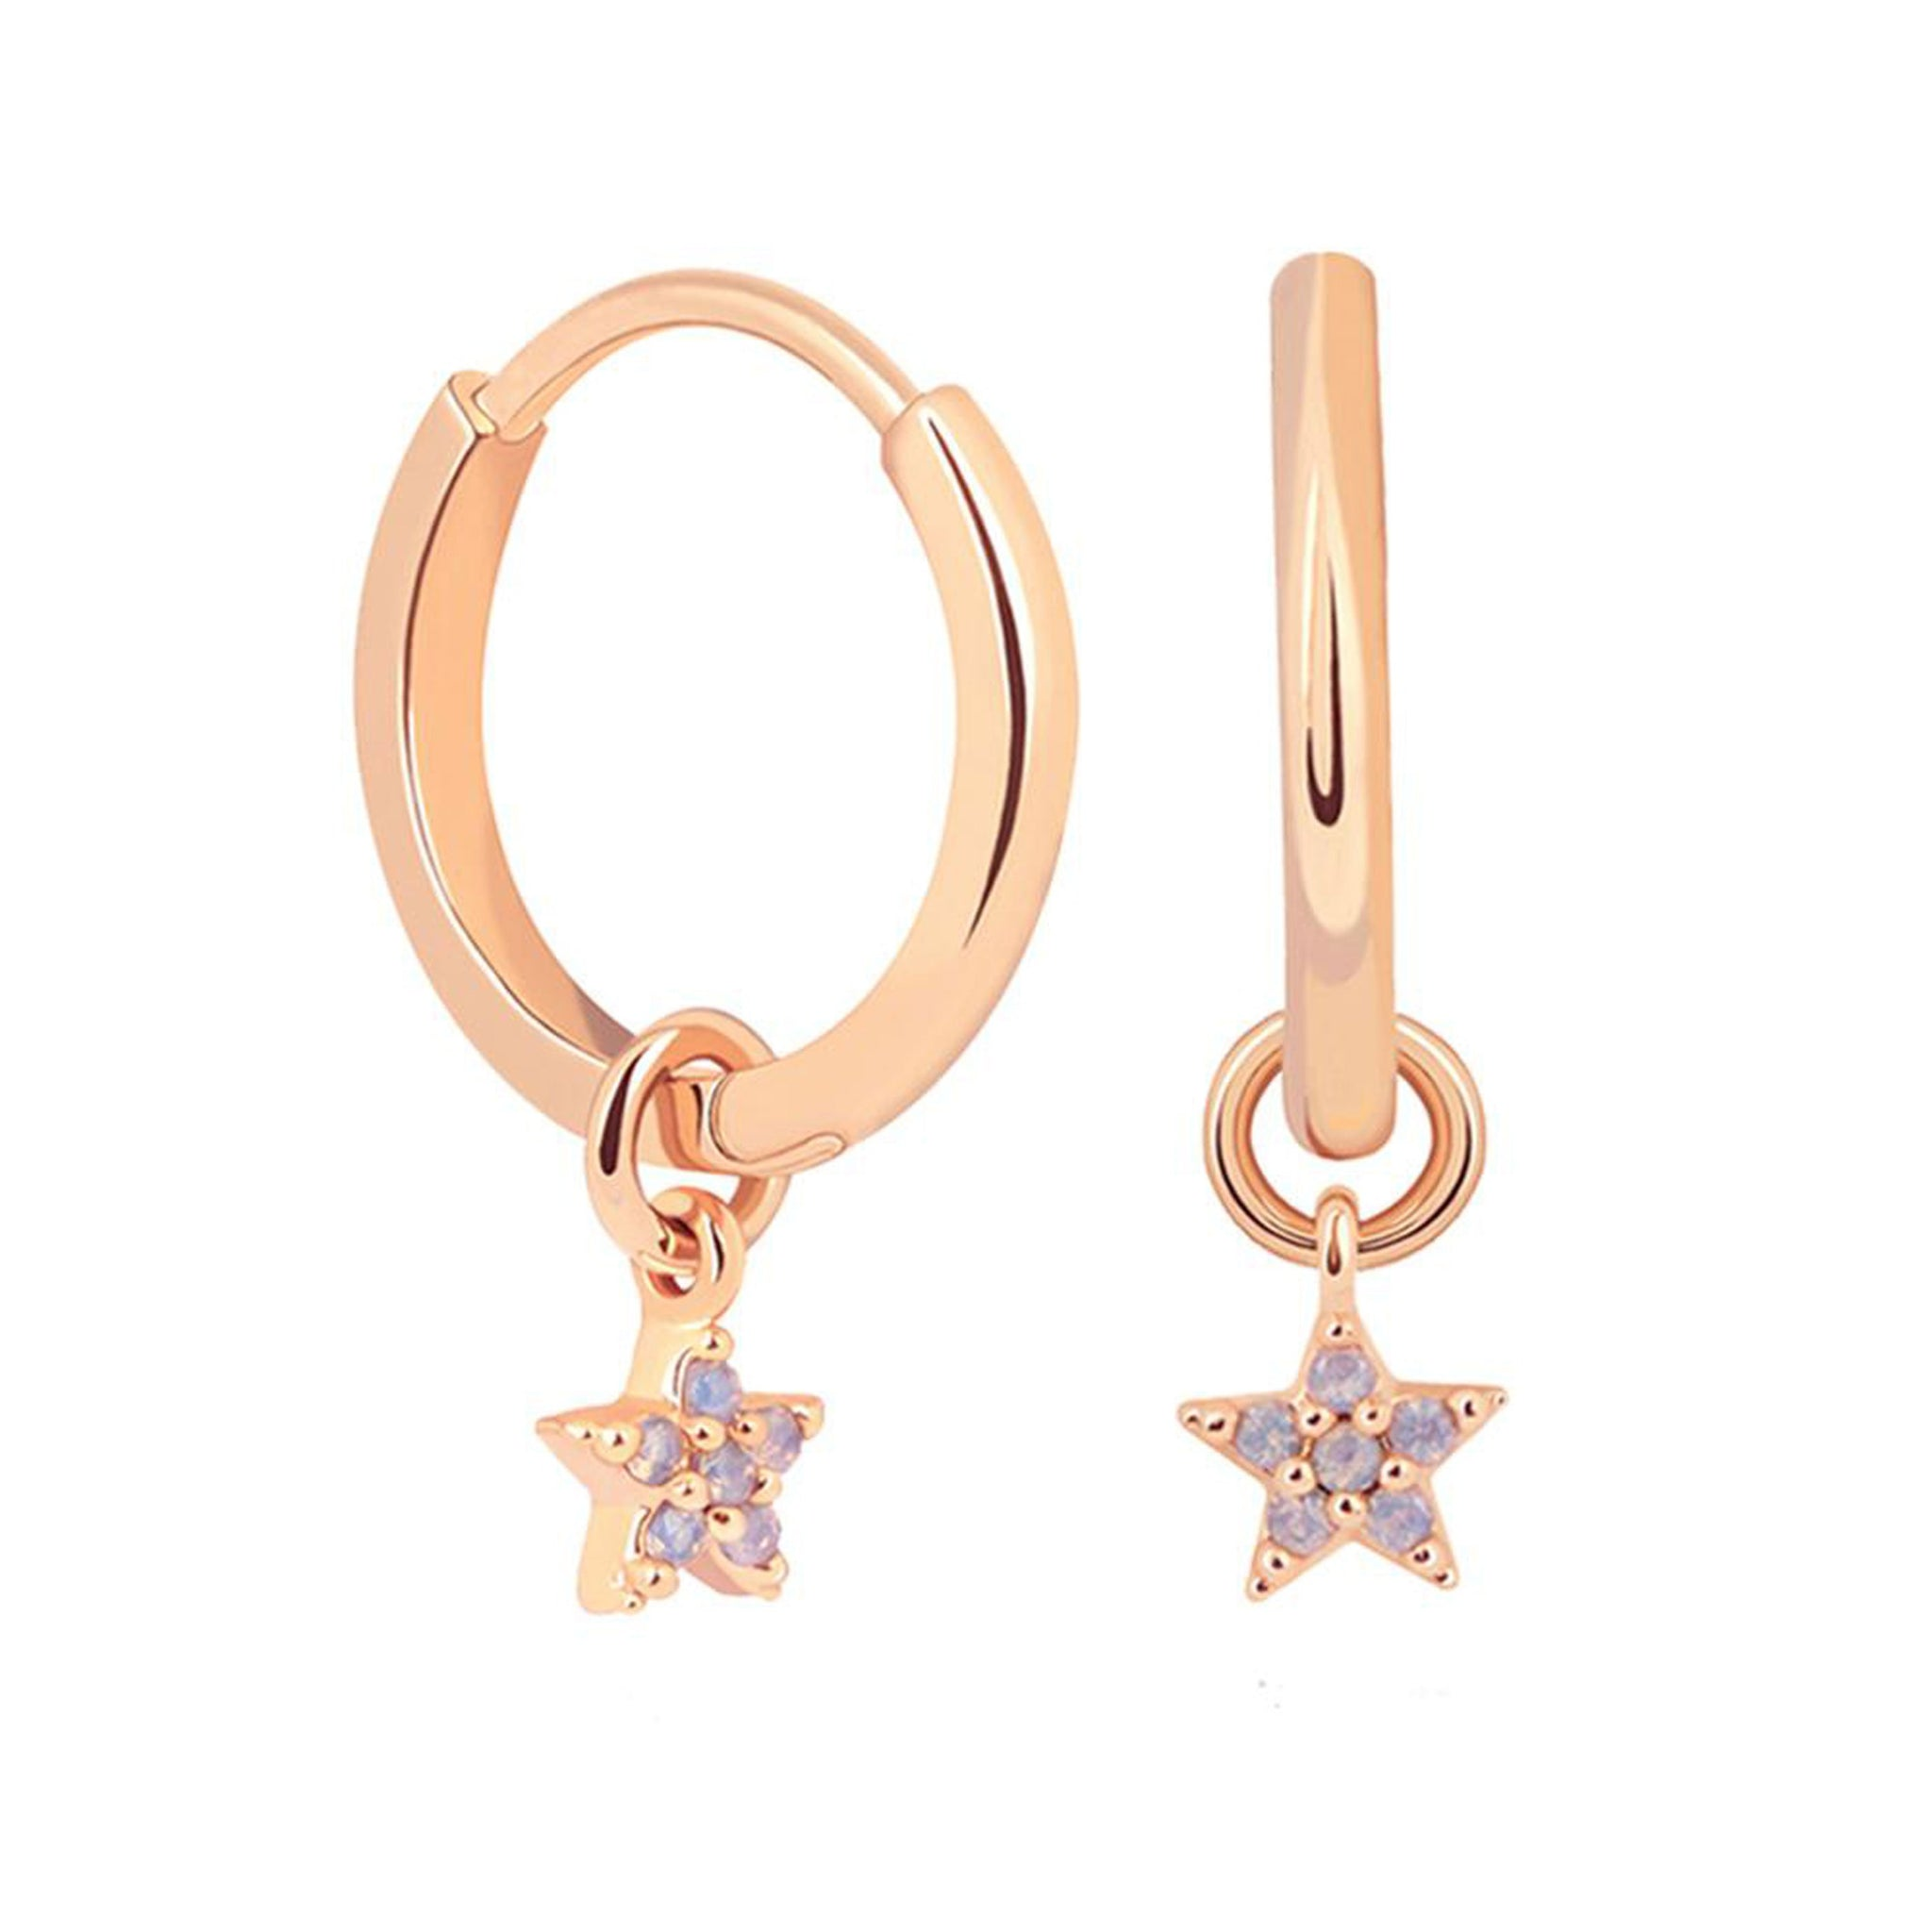 Mystic Star Pendant Hoop Earrings in Rose Gold